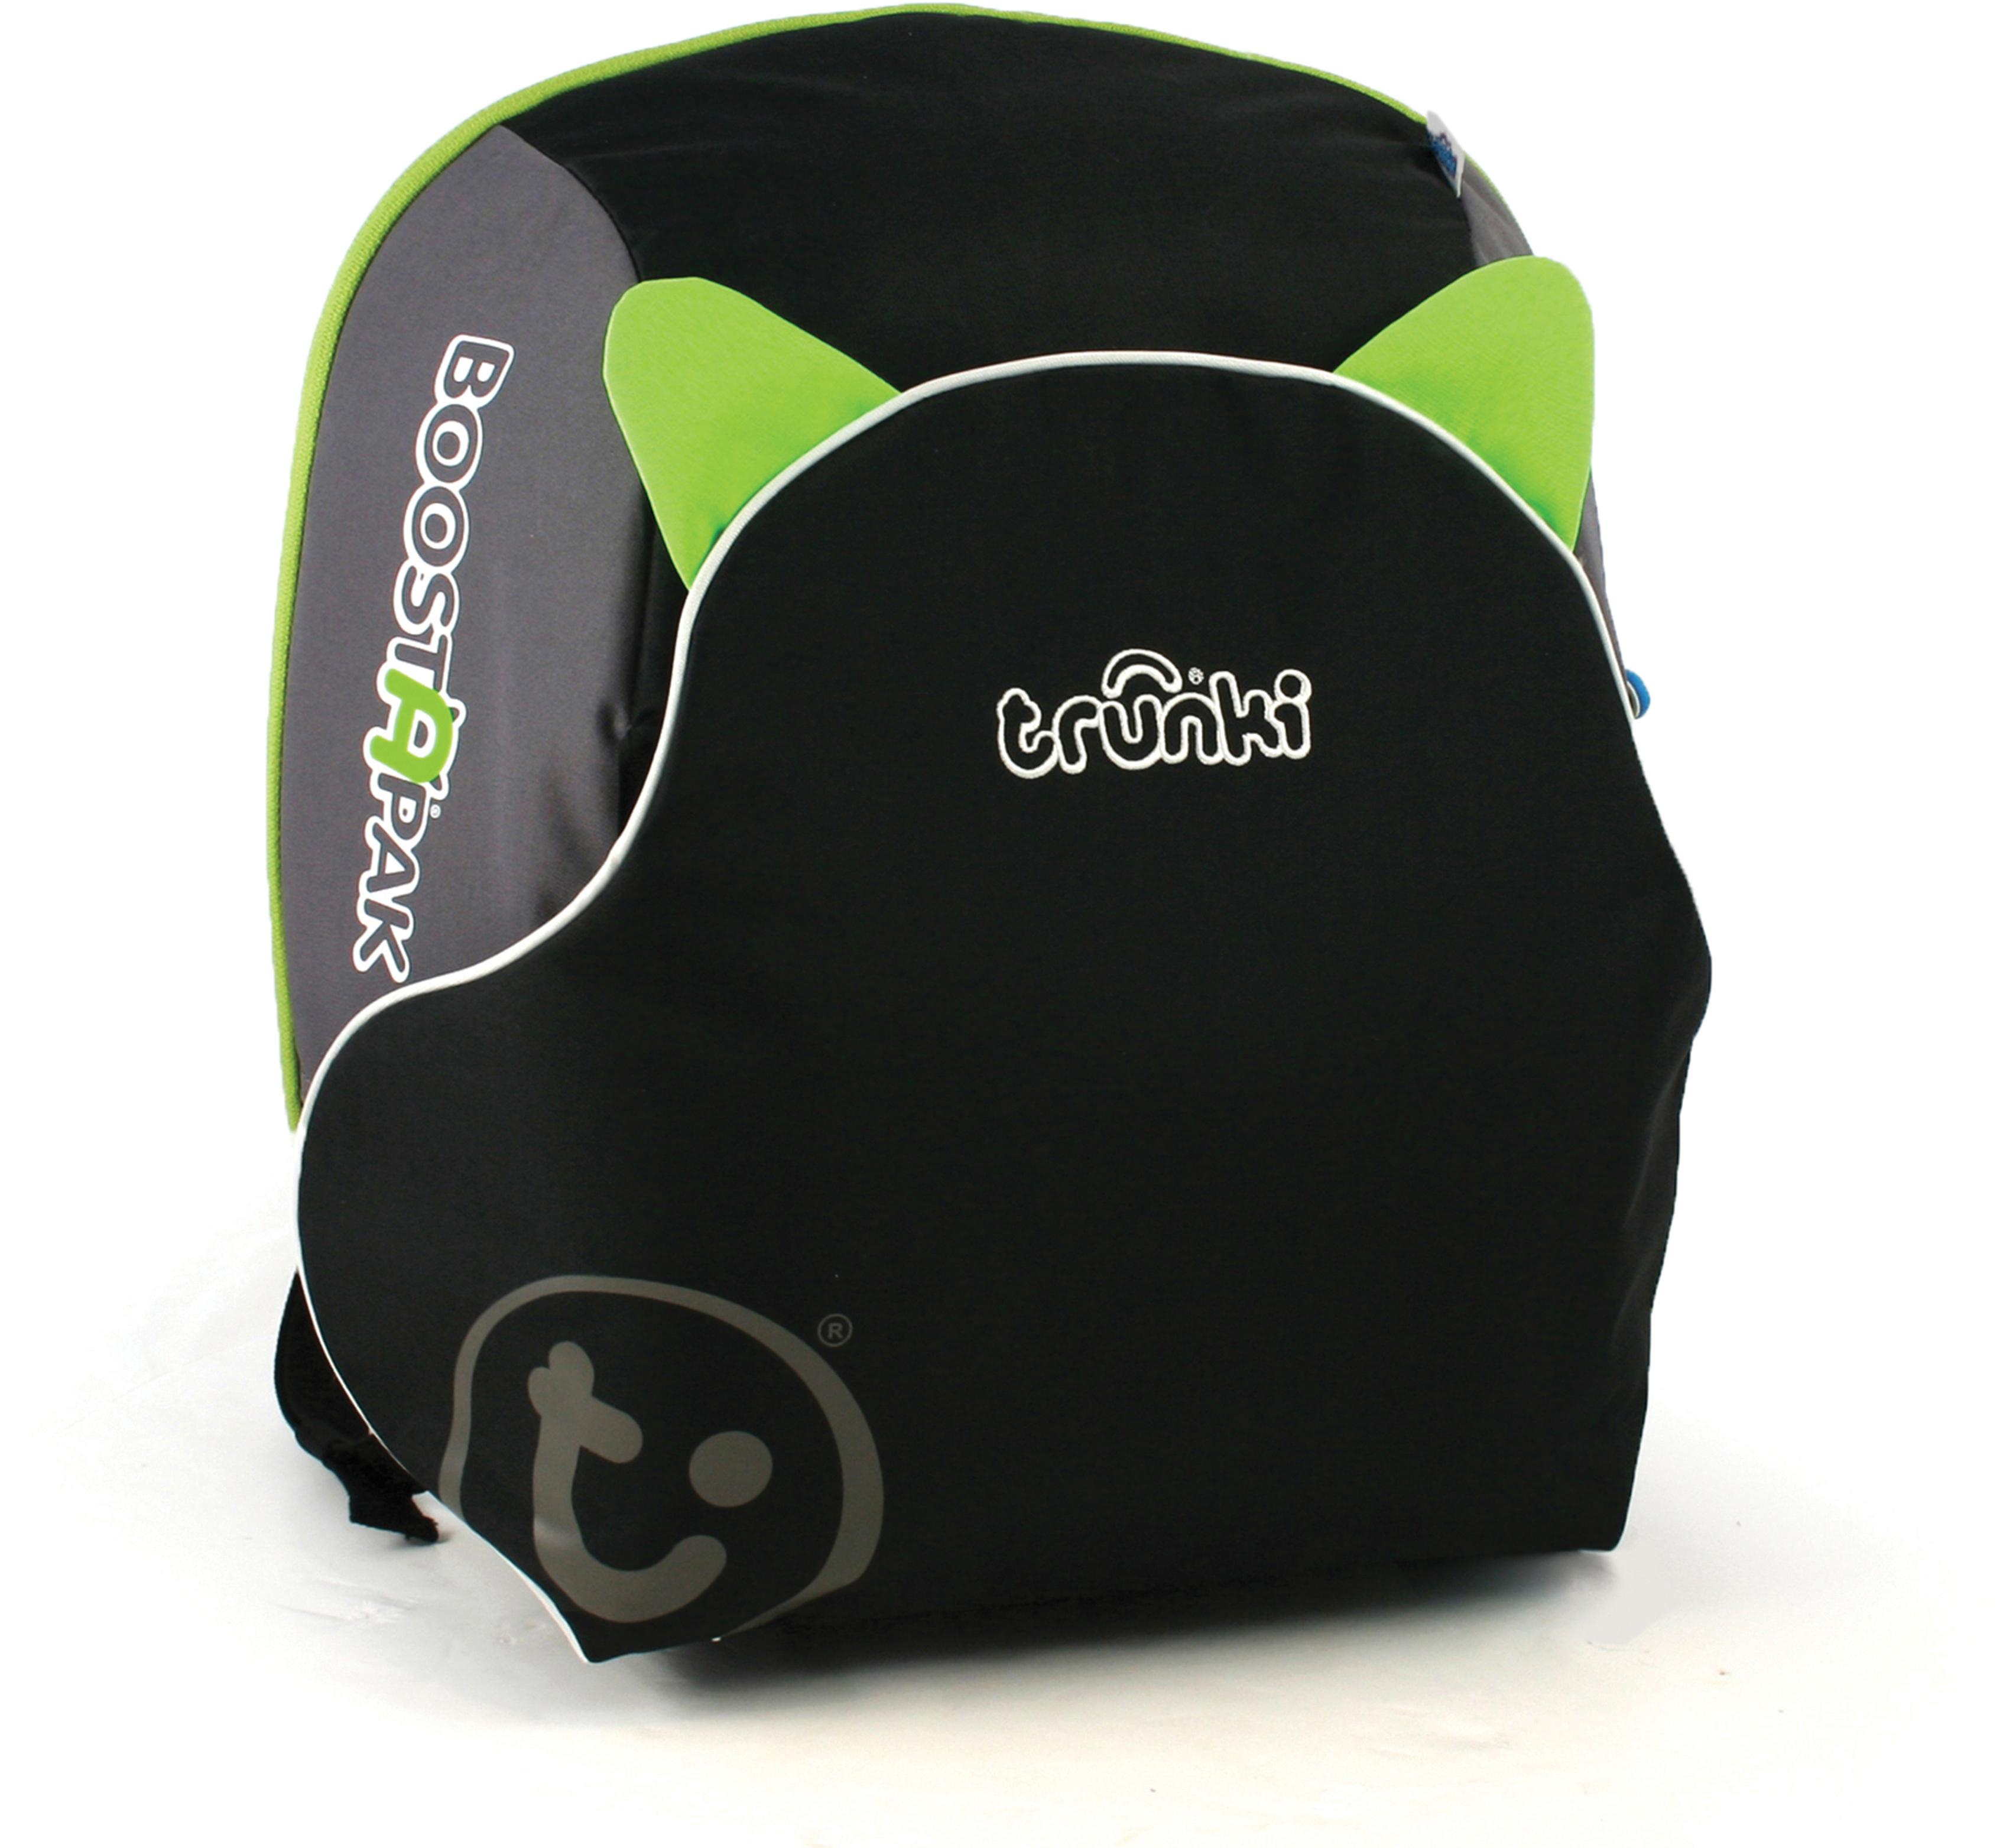 Trunki Boostapak Booster Seat - Black